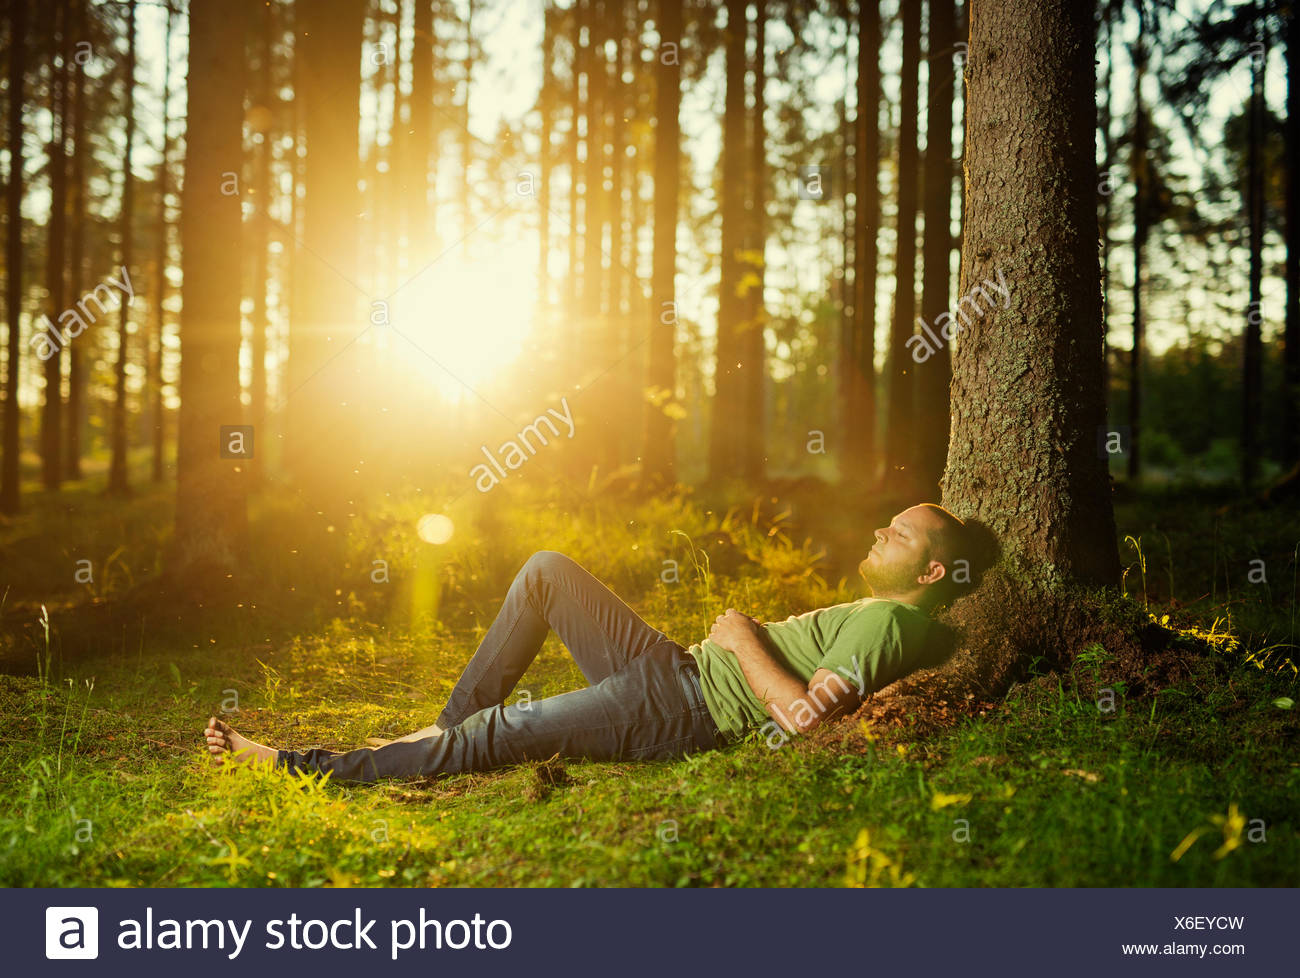 Man sleeping in spruce forest - Stock Image